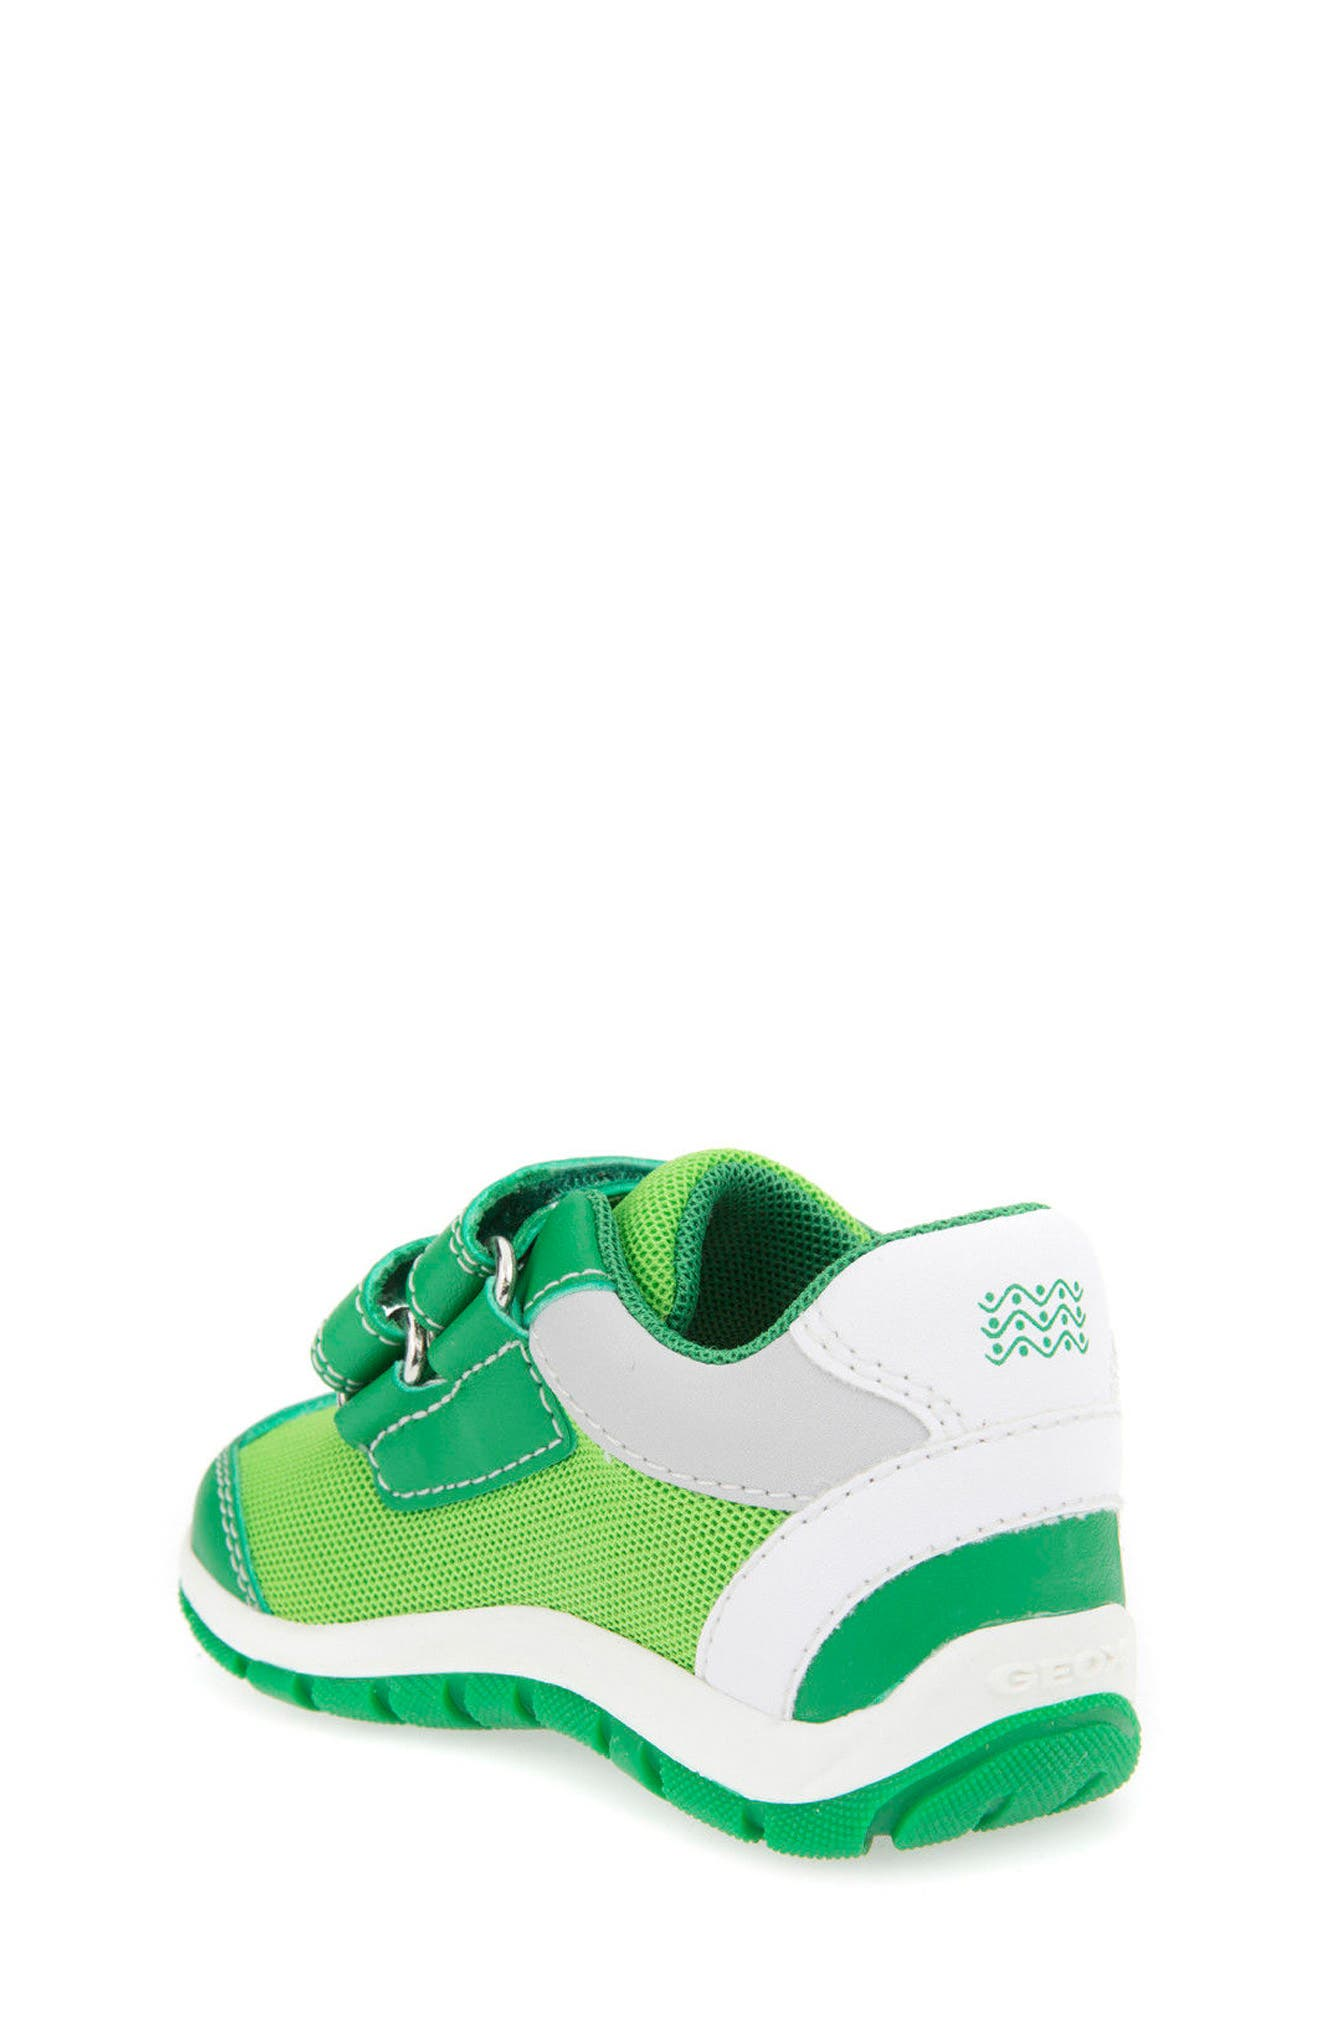 'Shaax 9' Sneaker,                             Alternate thumbnail 2, color,                             Green